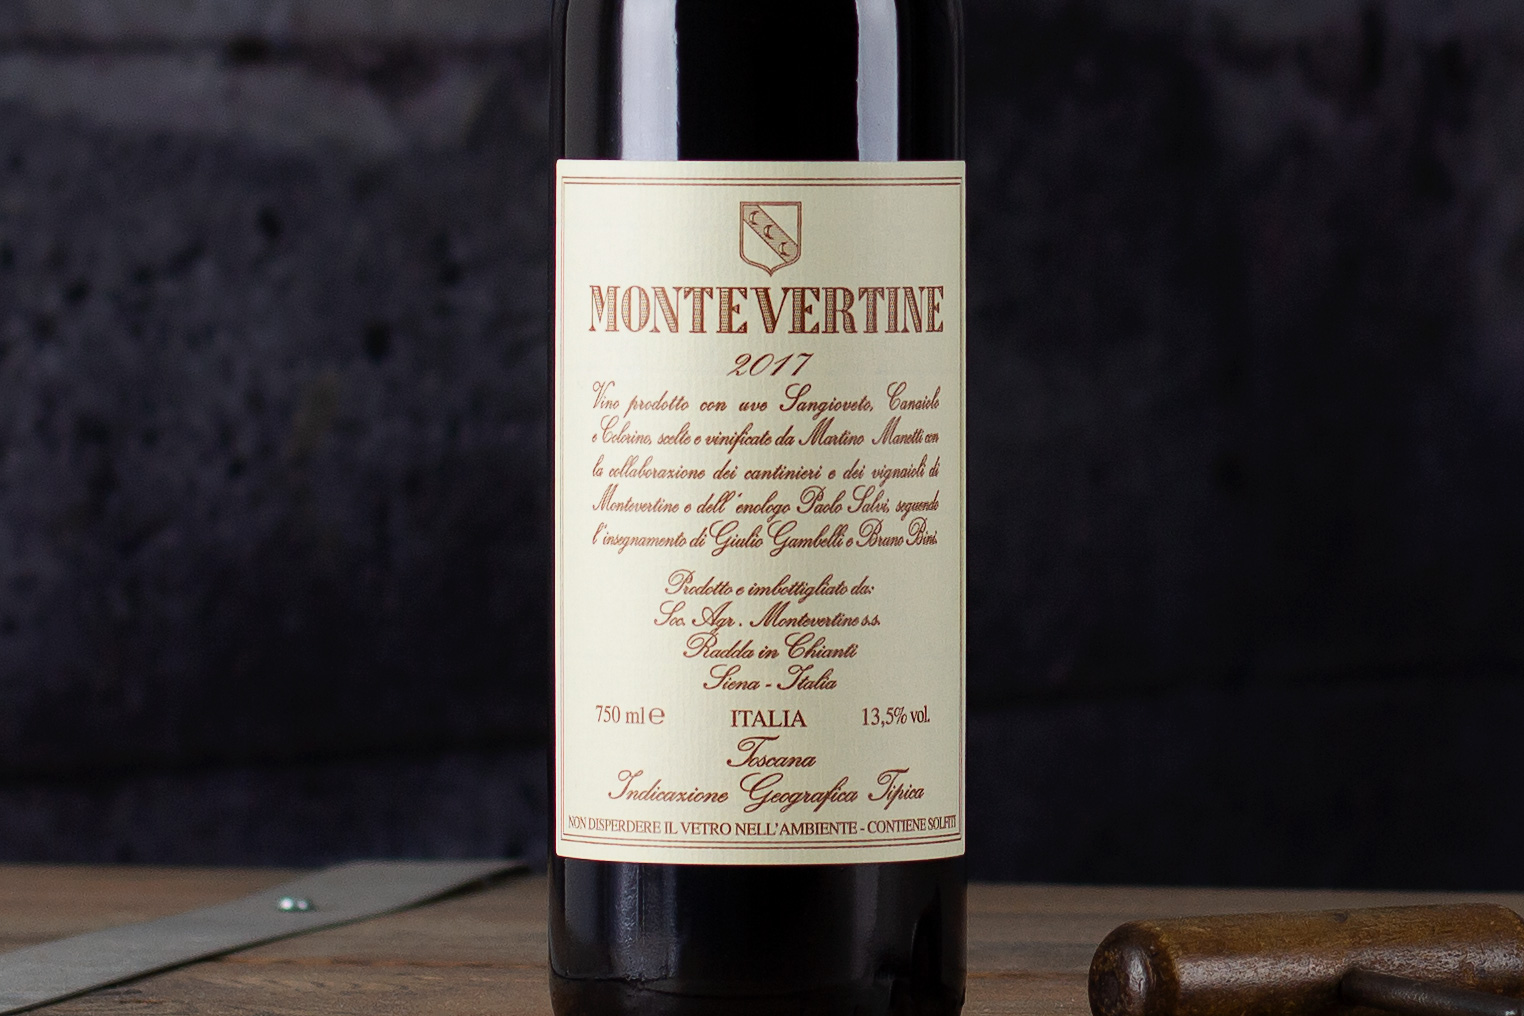 Montevertine, Rosso di Toscana Tuscany, Italy 2017 - SommSelect